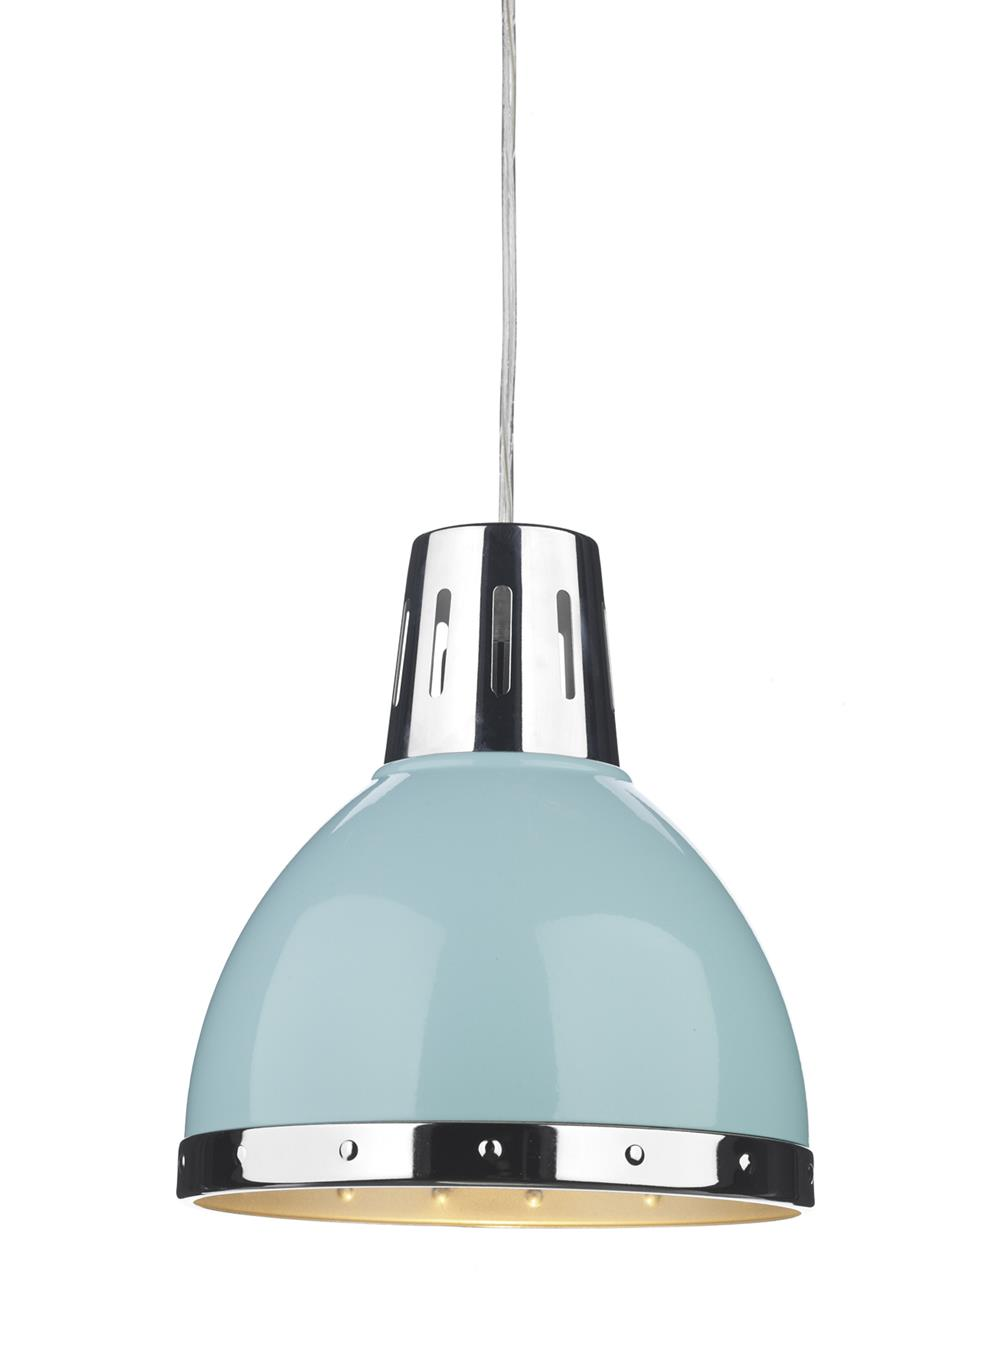 Dar OSA6523 Osaka Easy Fit Pendant Shade in Pale Blue